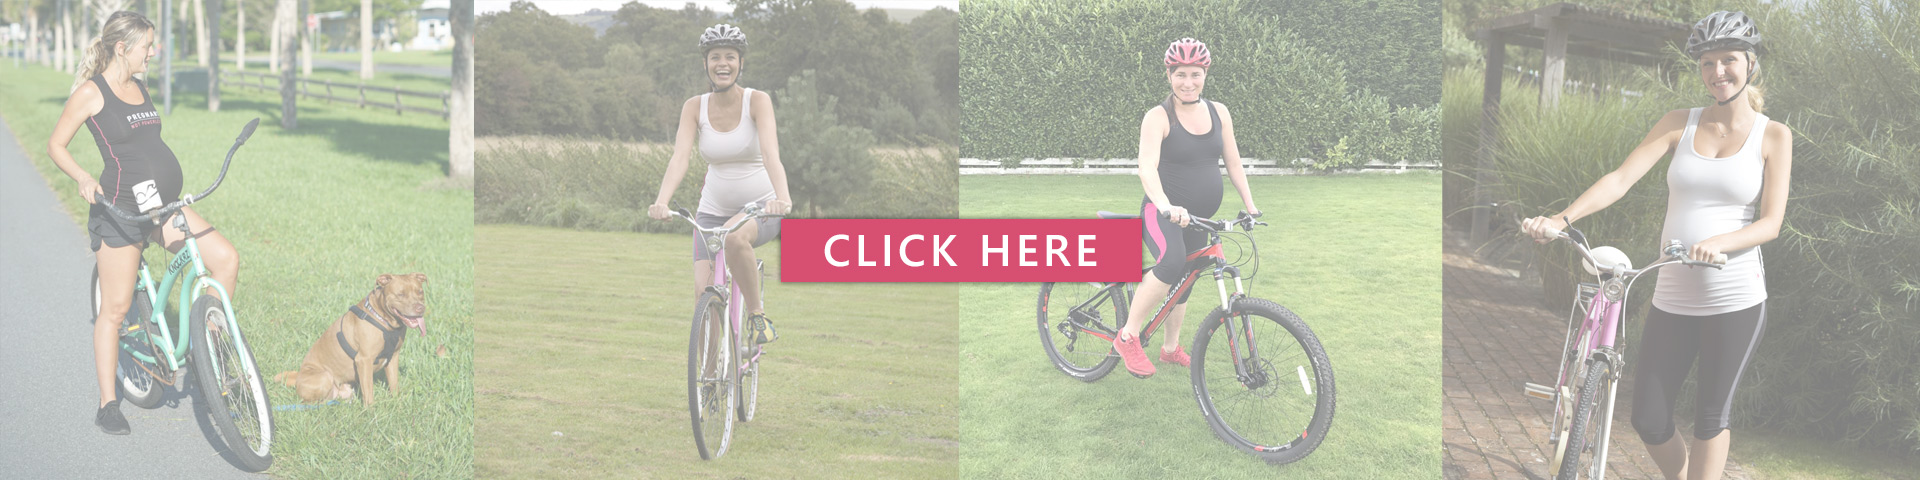 Cycling clothes for pregnancy footer